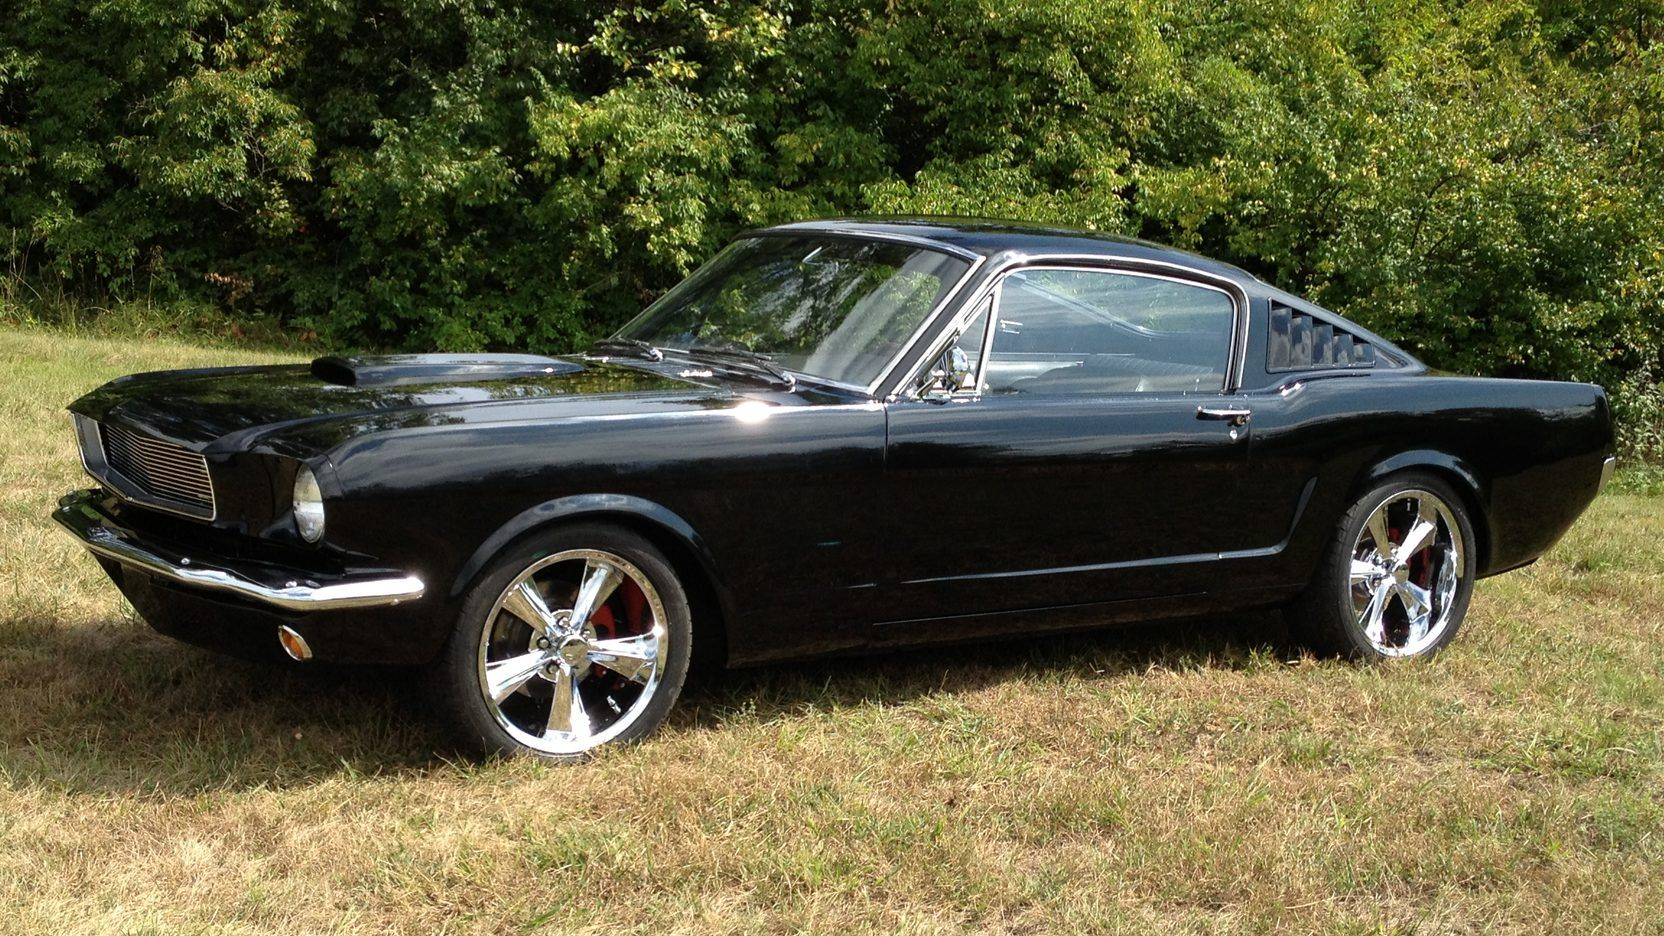 1965 Ford Mustang Fastback presented as Lot S4 at